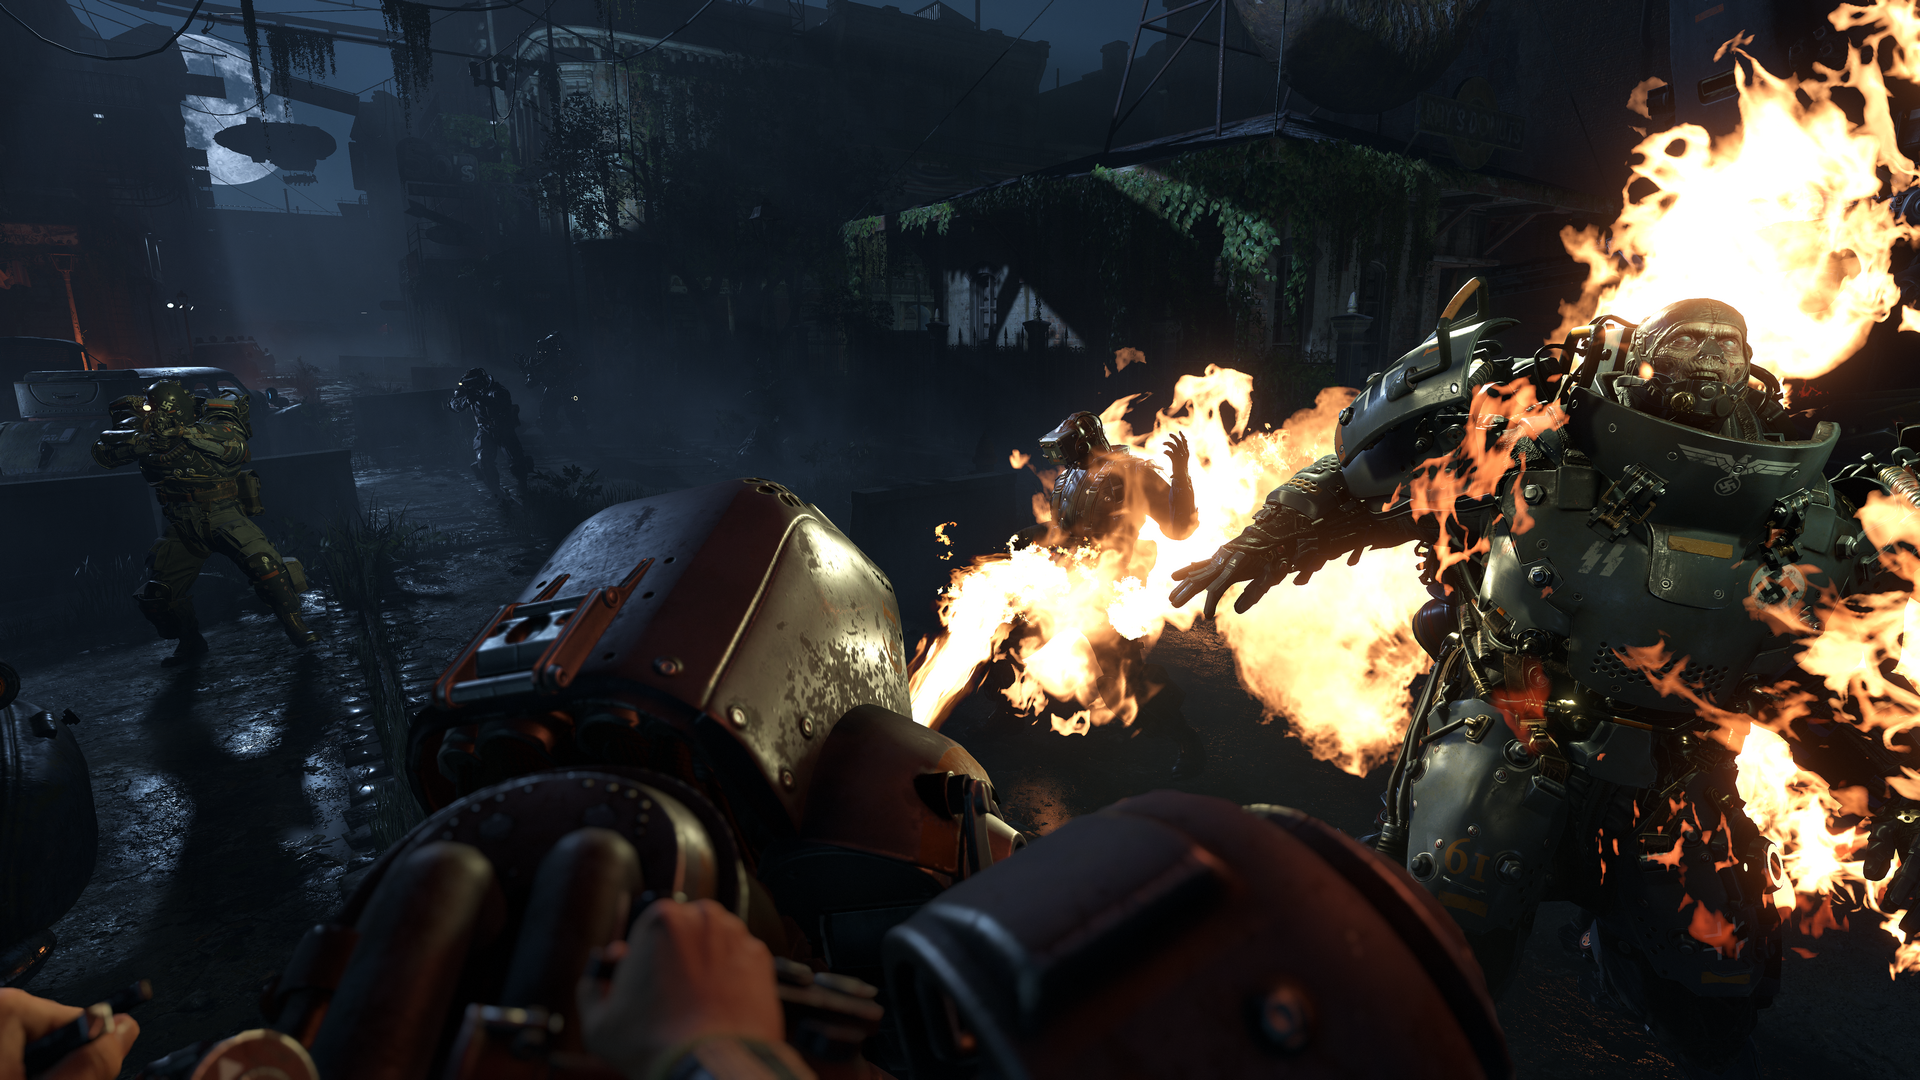 wolfenstein_2_screenshot_3